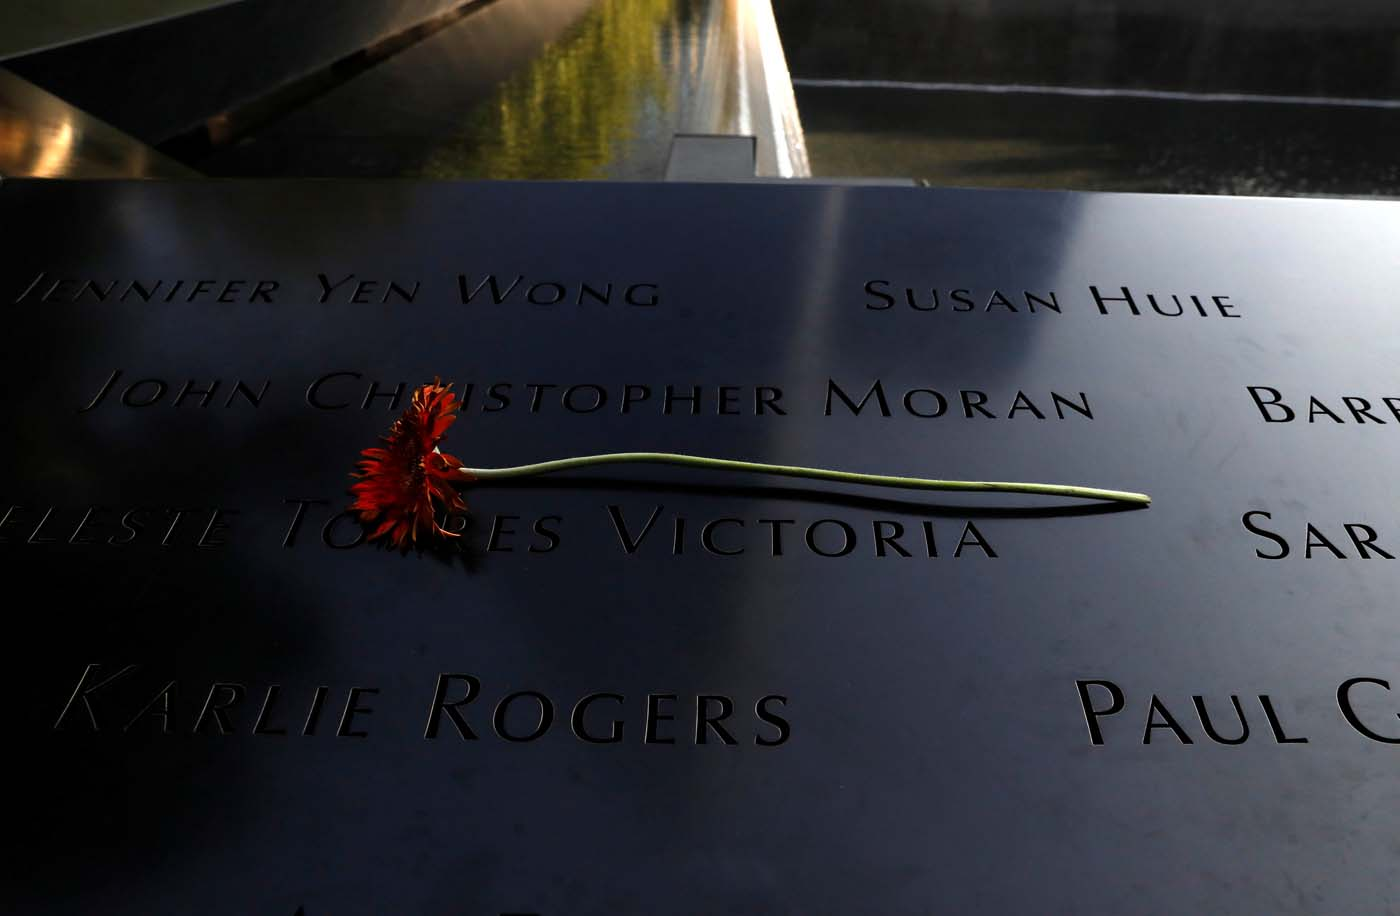 A flower rests over names at the edge of the South reflecting pool at the National September 11 Memorial and Museum during ceremonies marking the 16th anniversary of the September 11, 2001 attacks in New York, U.S. September 11, 2017. REUTERS/Brendan McDermid